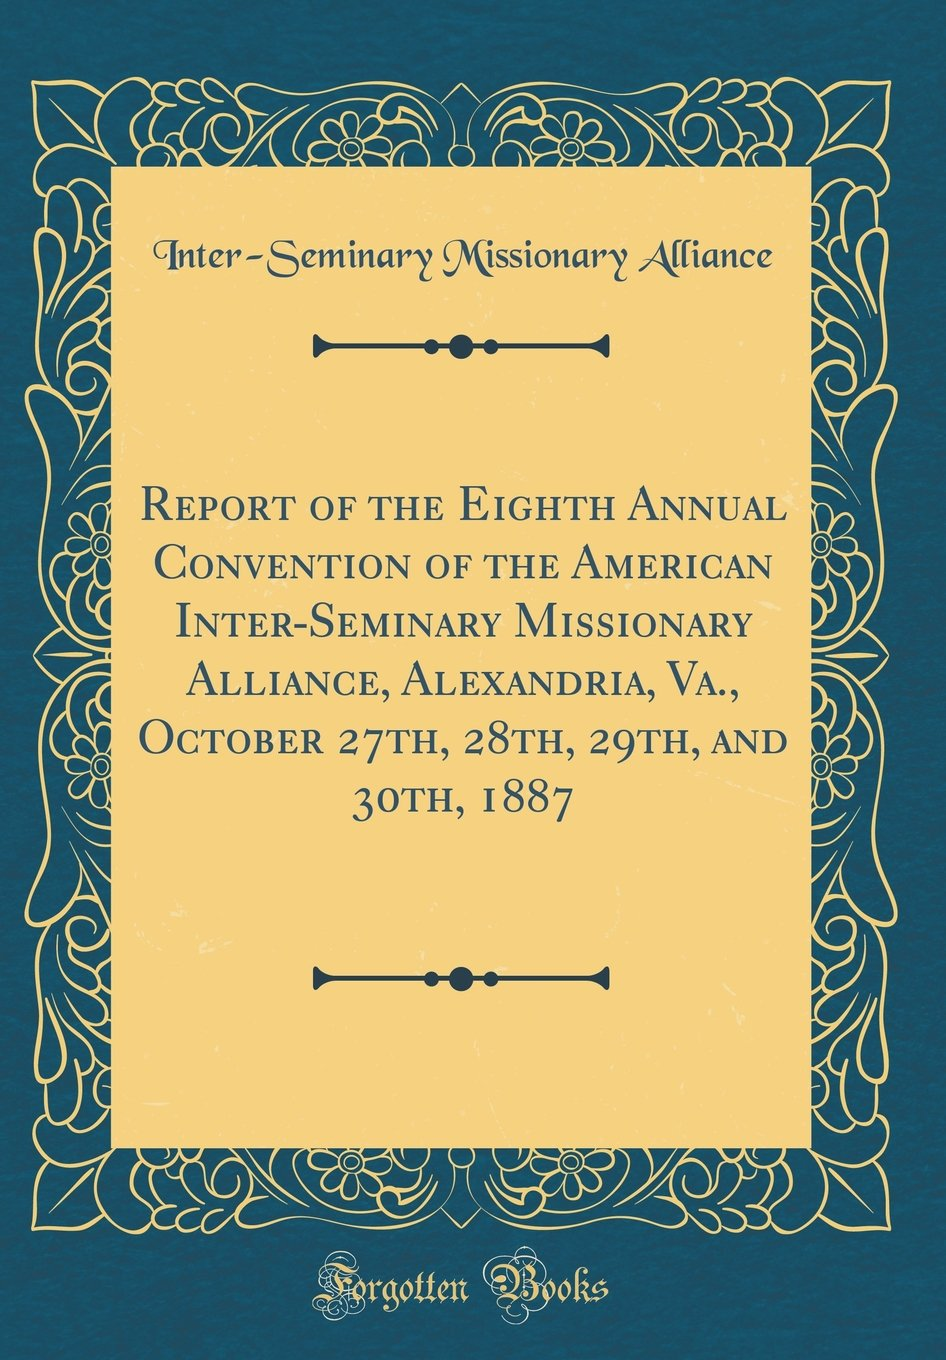 Report of the Eighth Annual Convention of the American Inter-Seminary Missionary Alliance, Alexandria, Va., October 27th, 28th, 29th, and 30th, 1887 (Classic Reprint) PDF